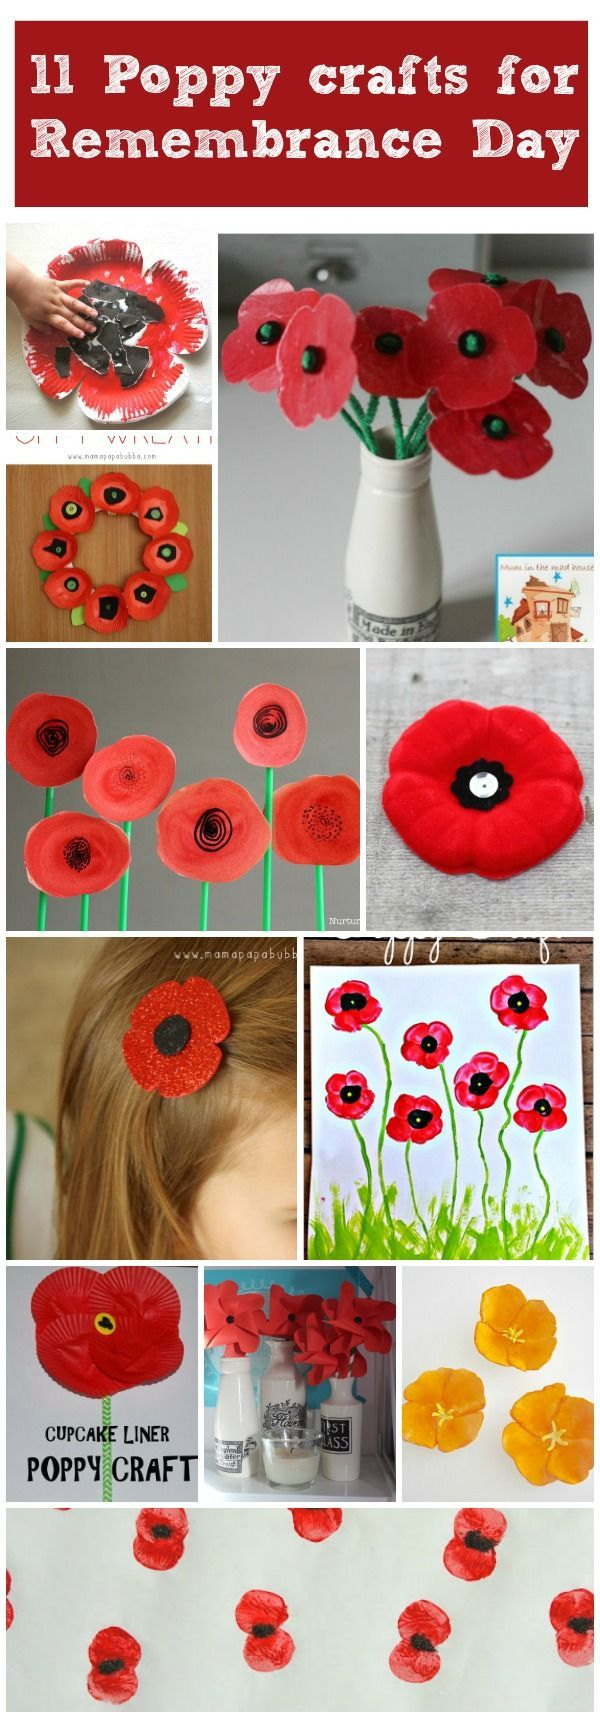 11 More Poppy Crafts For Remembrance Day Ideas Pinterest